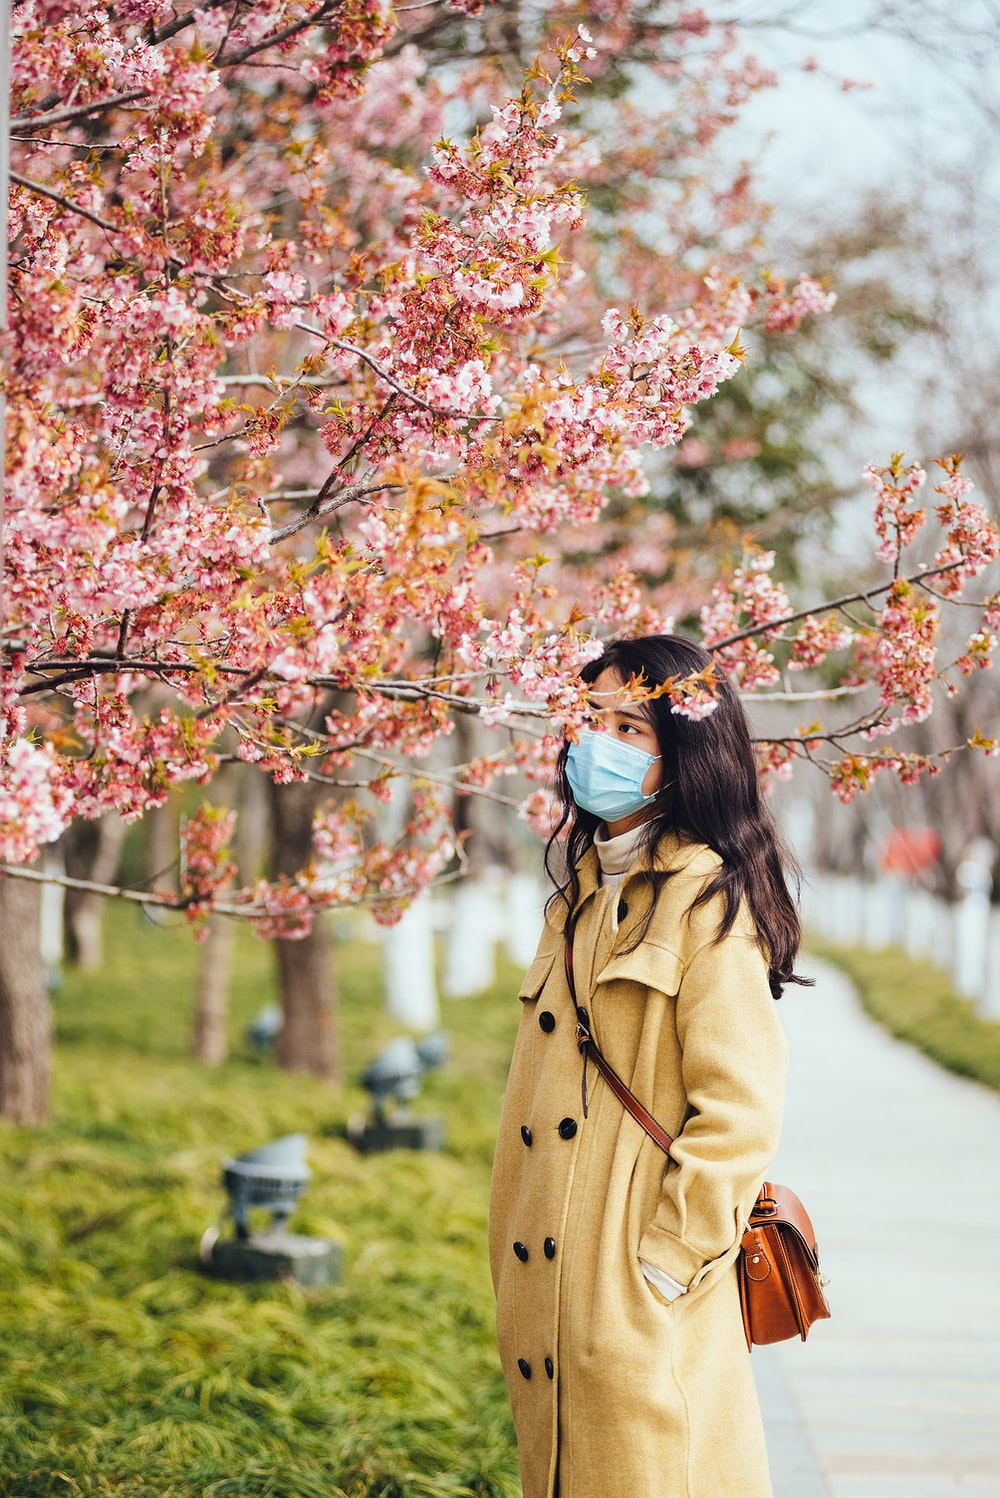 woman in brown coat standing under pink cherry blossom tree during daytime